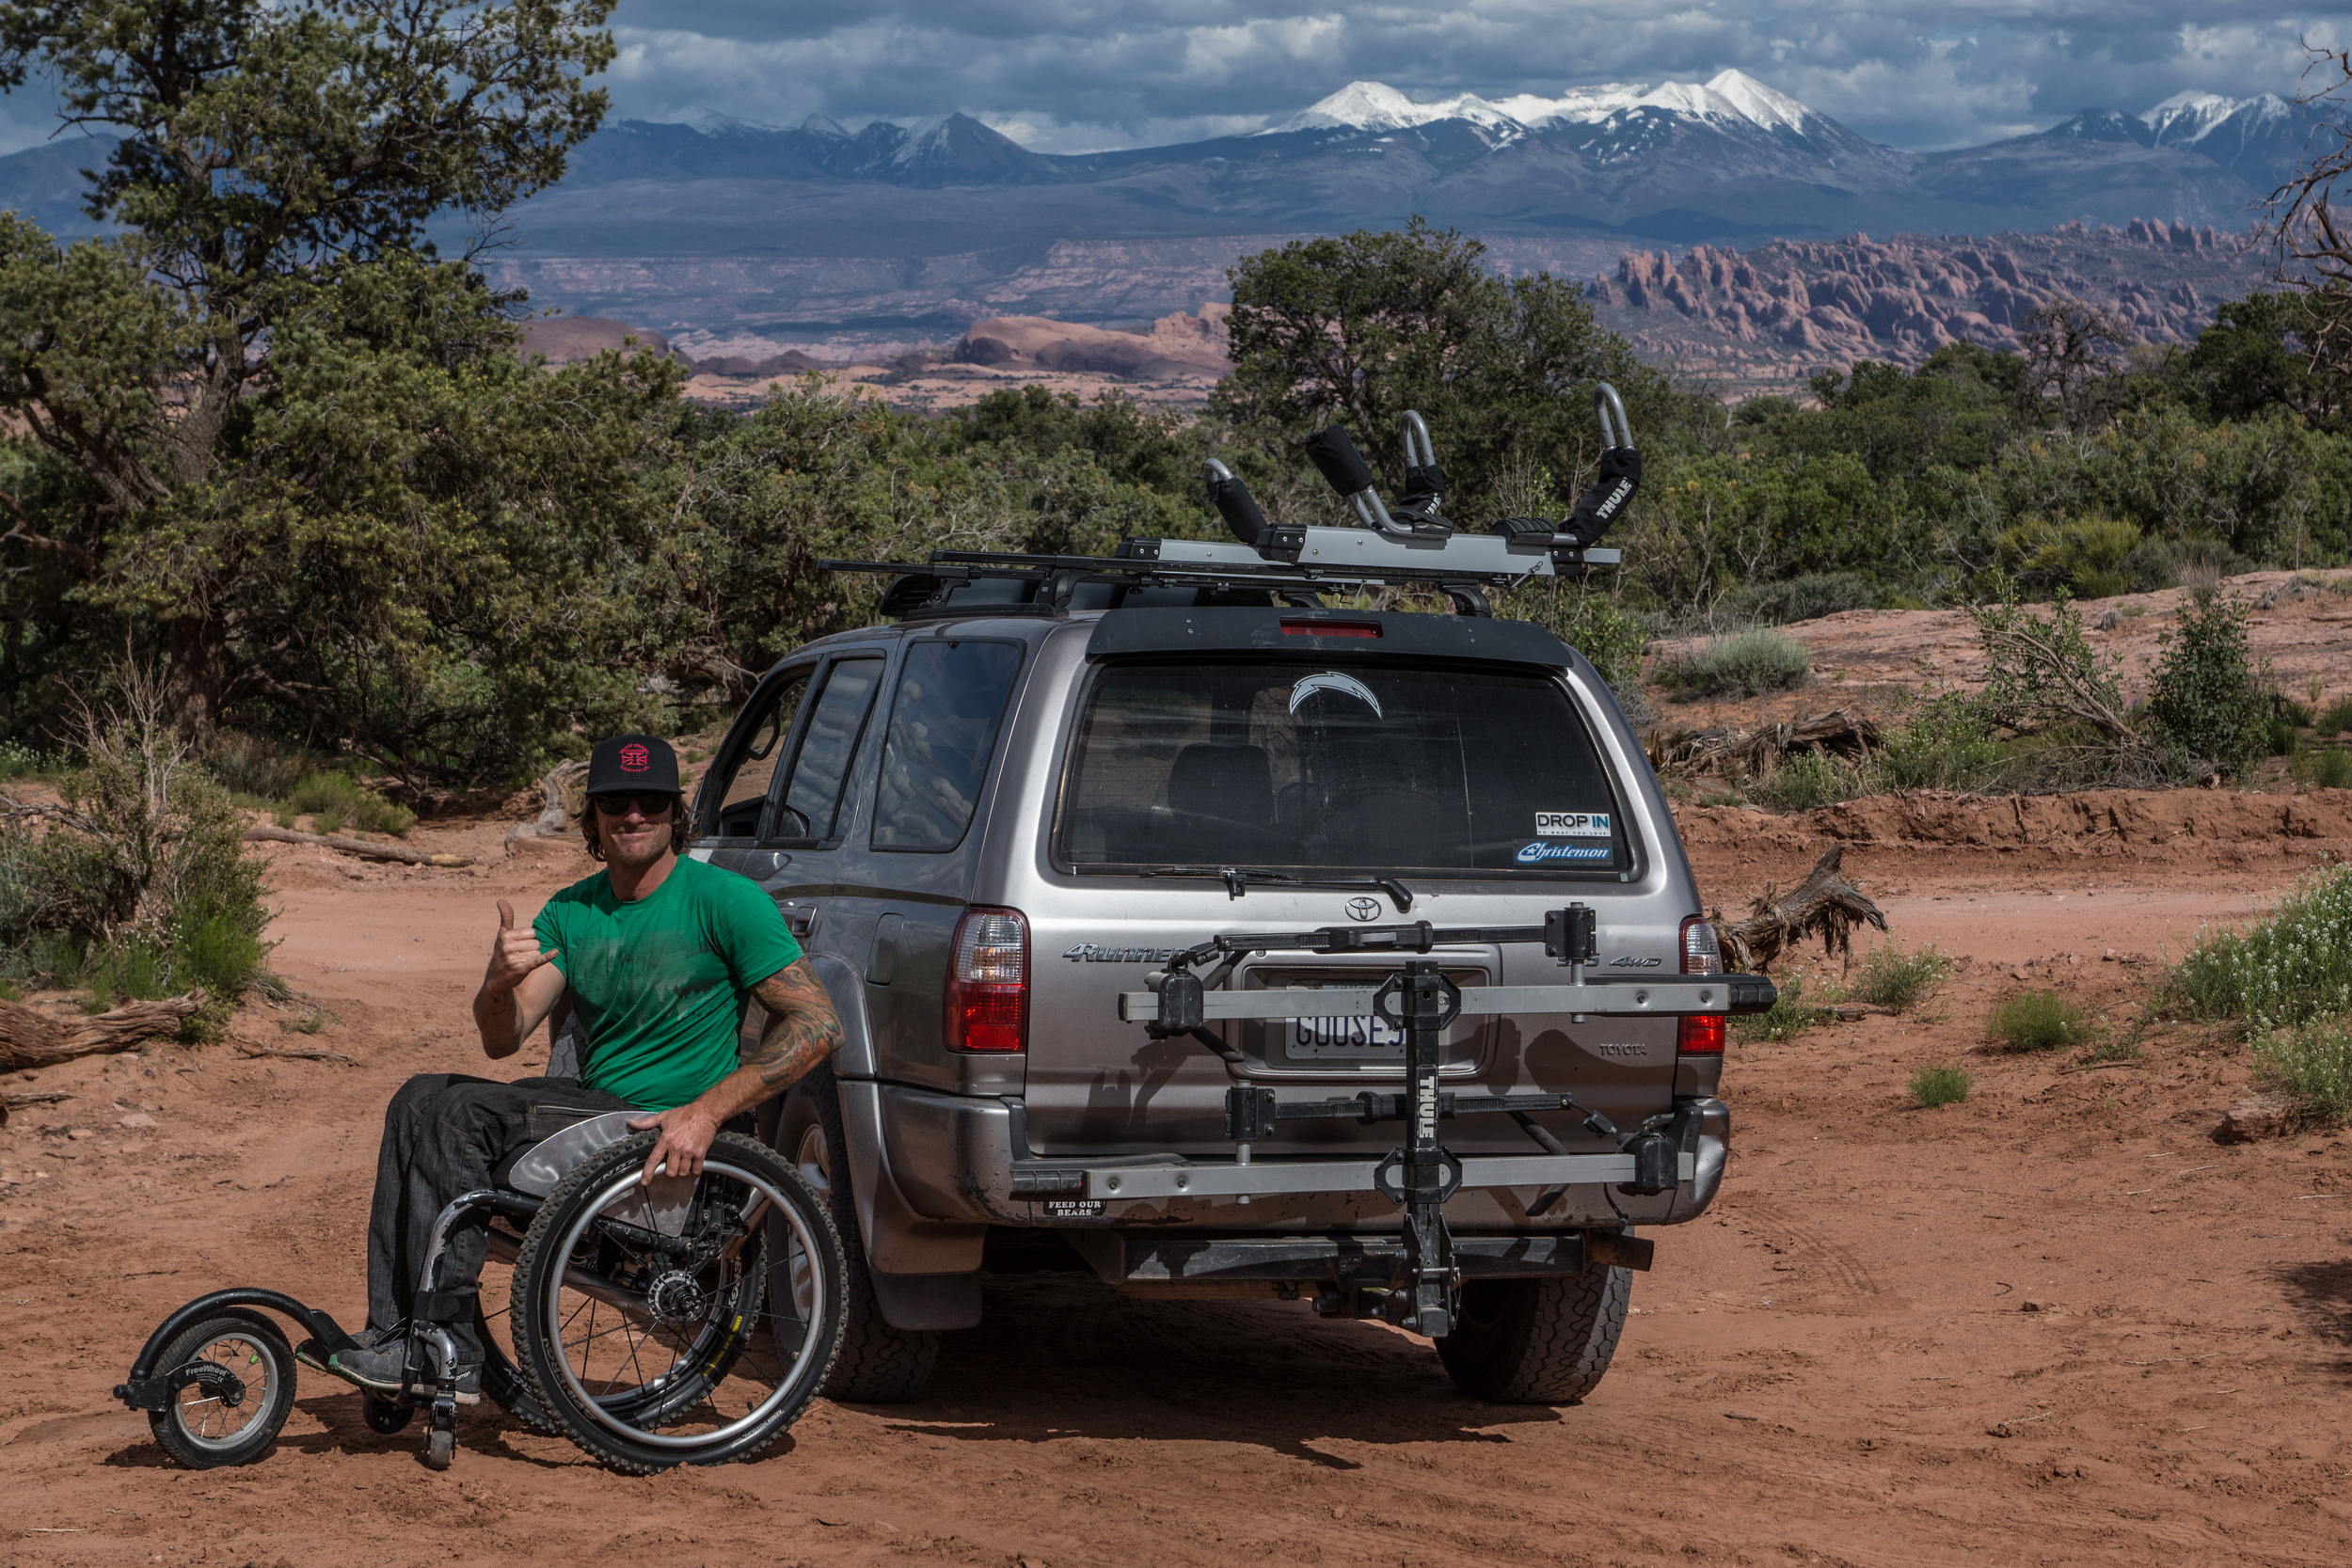 Pausing for a Free Wheel, Thule and Toyota advertisement. There ya go Pat!   Photo by Jeff Fox (  @foxonarock  )